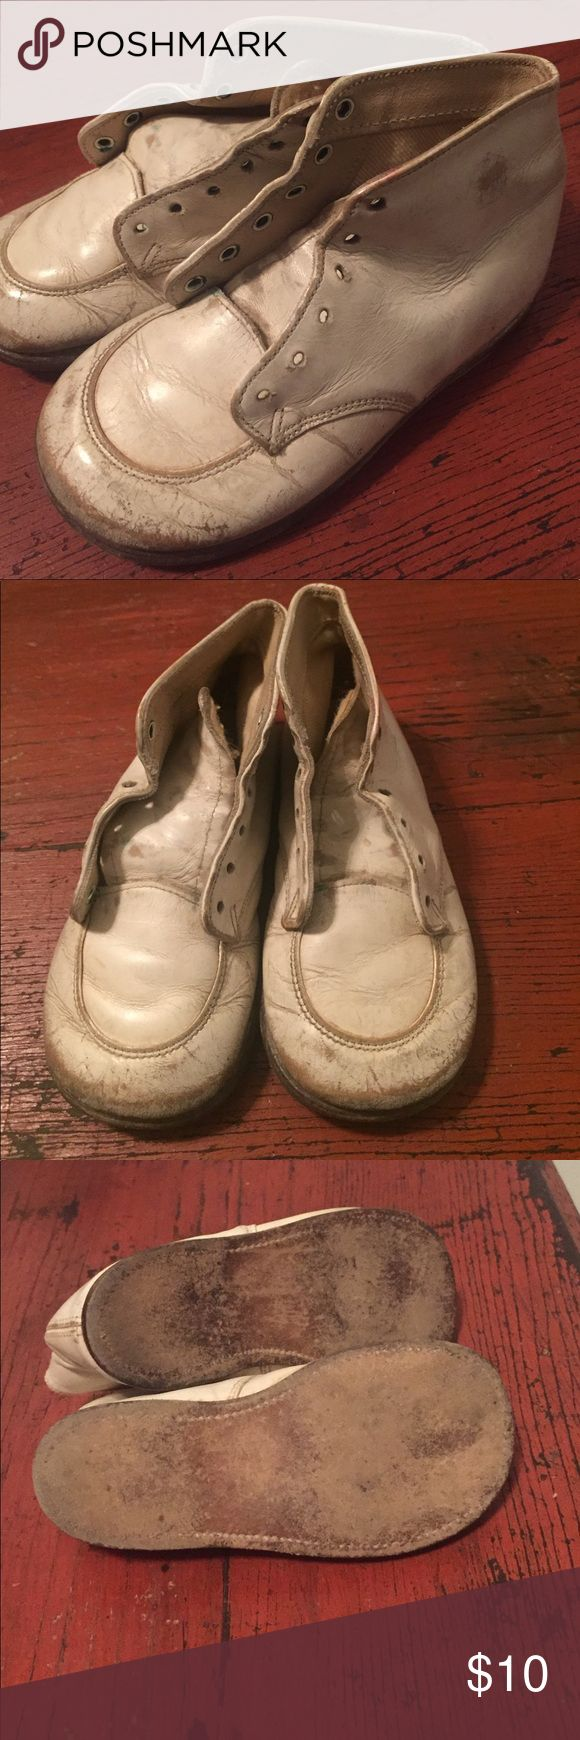 Vintage Toddler Walking Shoes 1950s - 60s Toddle Time shoes. Great addition for a shabby chic room or recreating an old family photo. Vintage Shoes